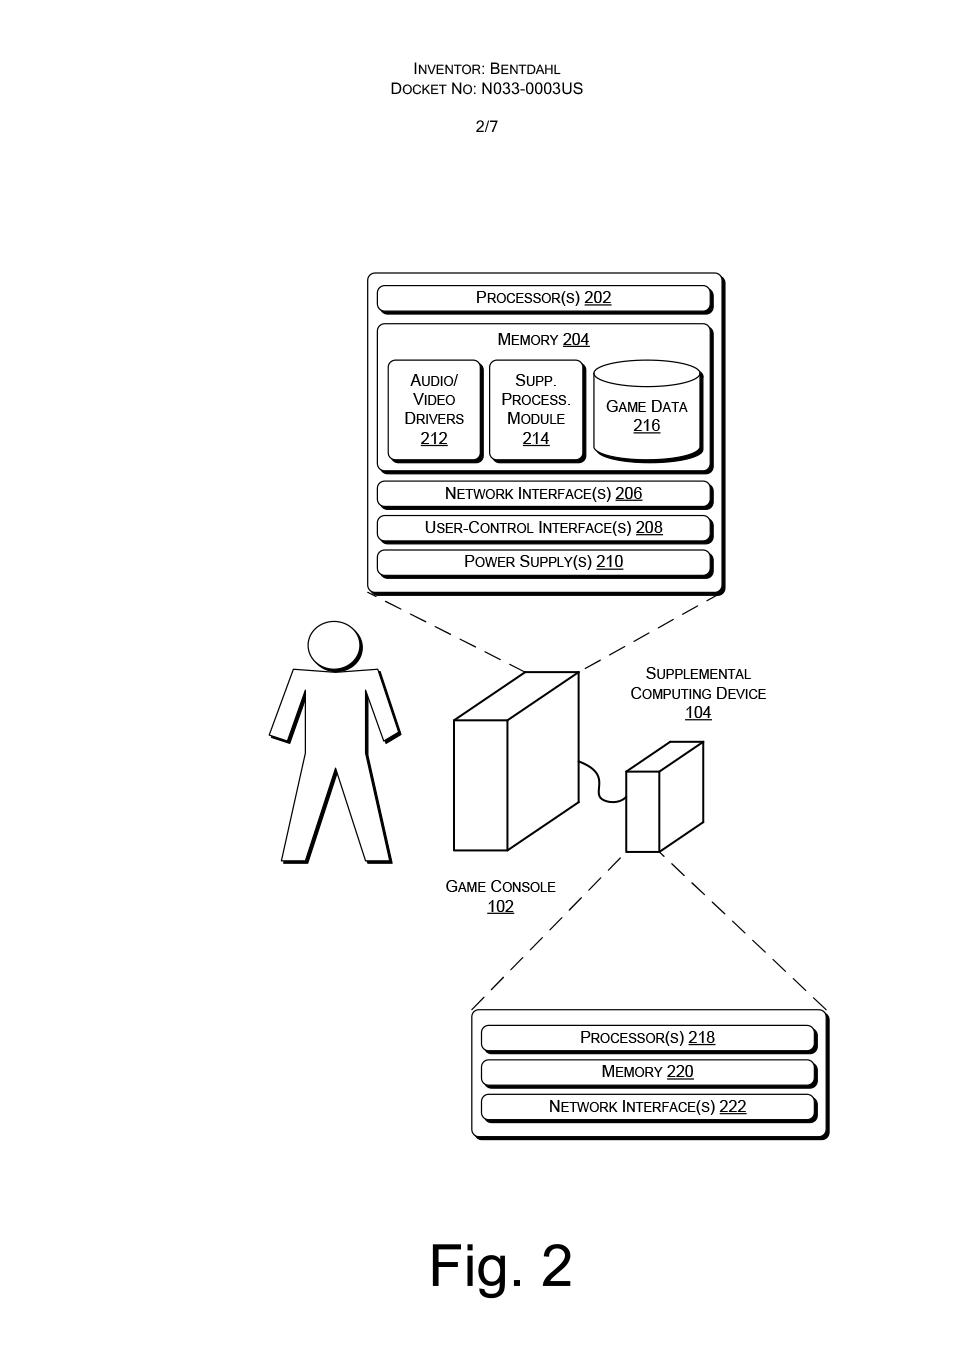 Nintendo Files Patent for Game Console with Detachable